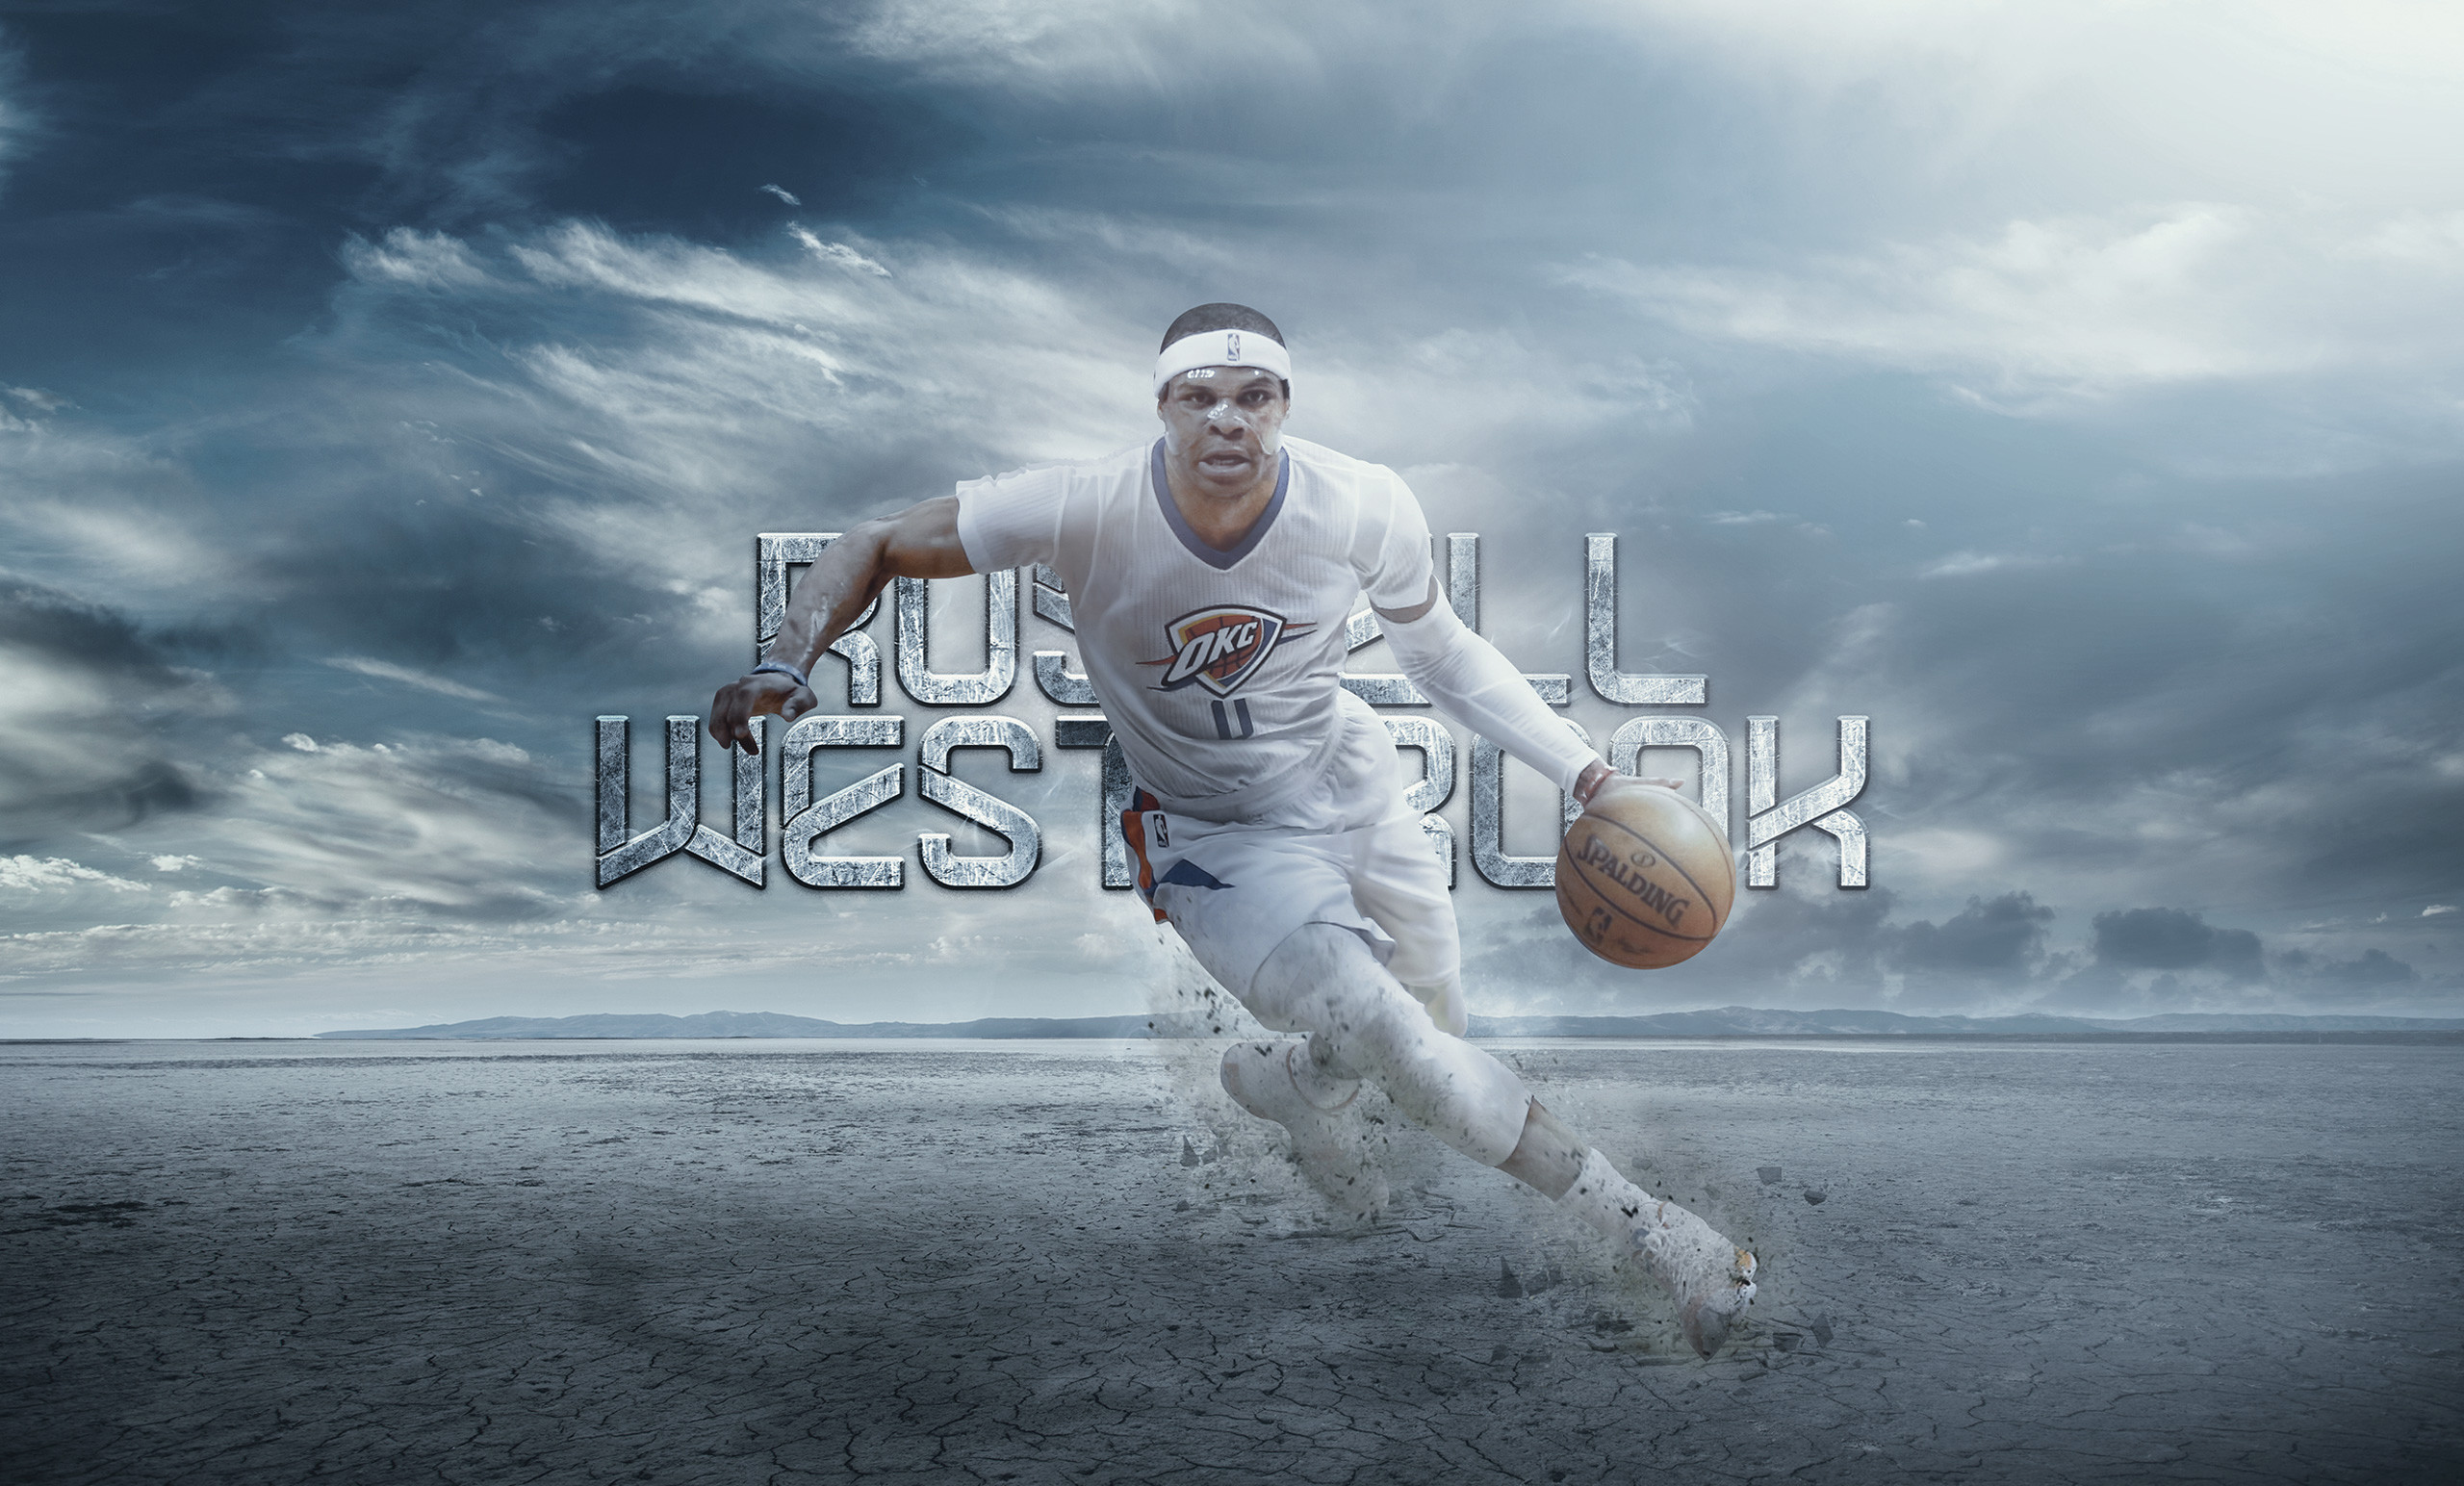 wallpaper.wiki-Russ-Westbrook-Thunder-Wallpapers-2560×1600-PIC-